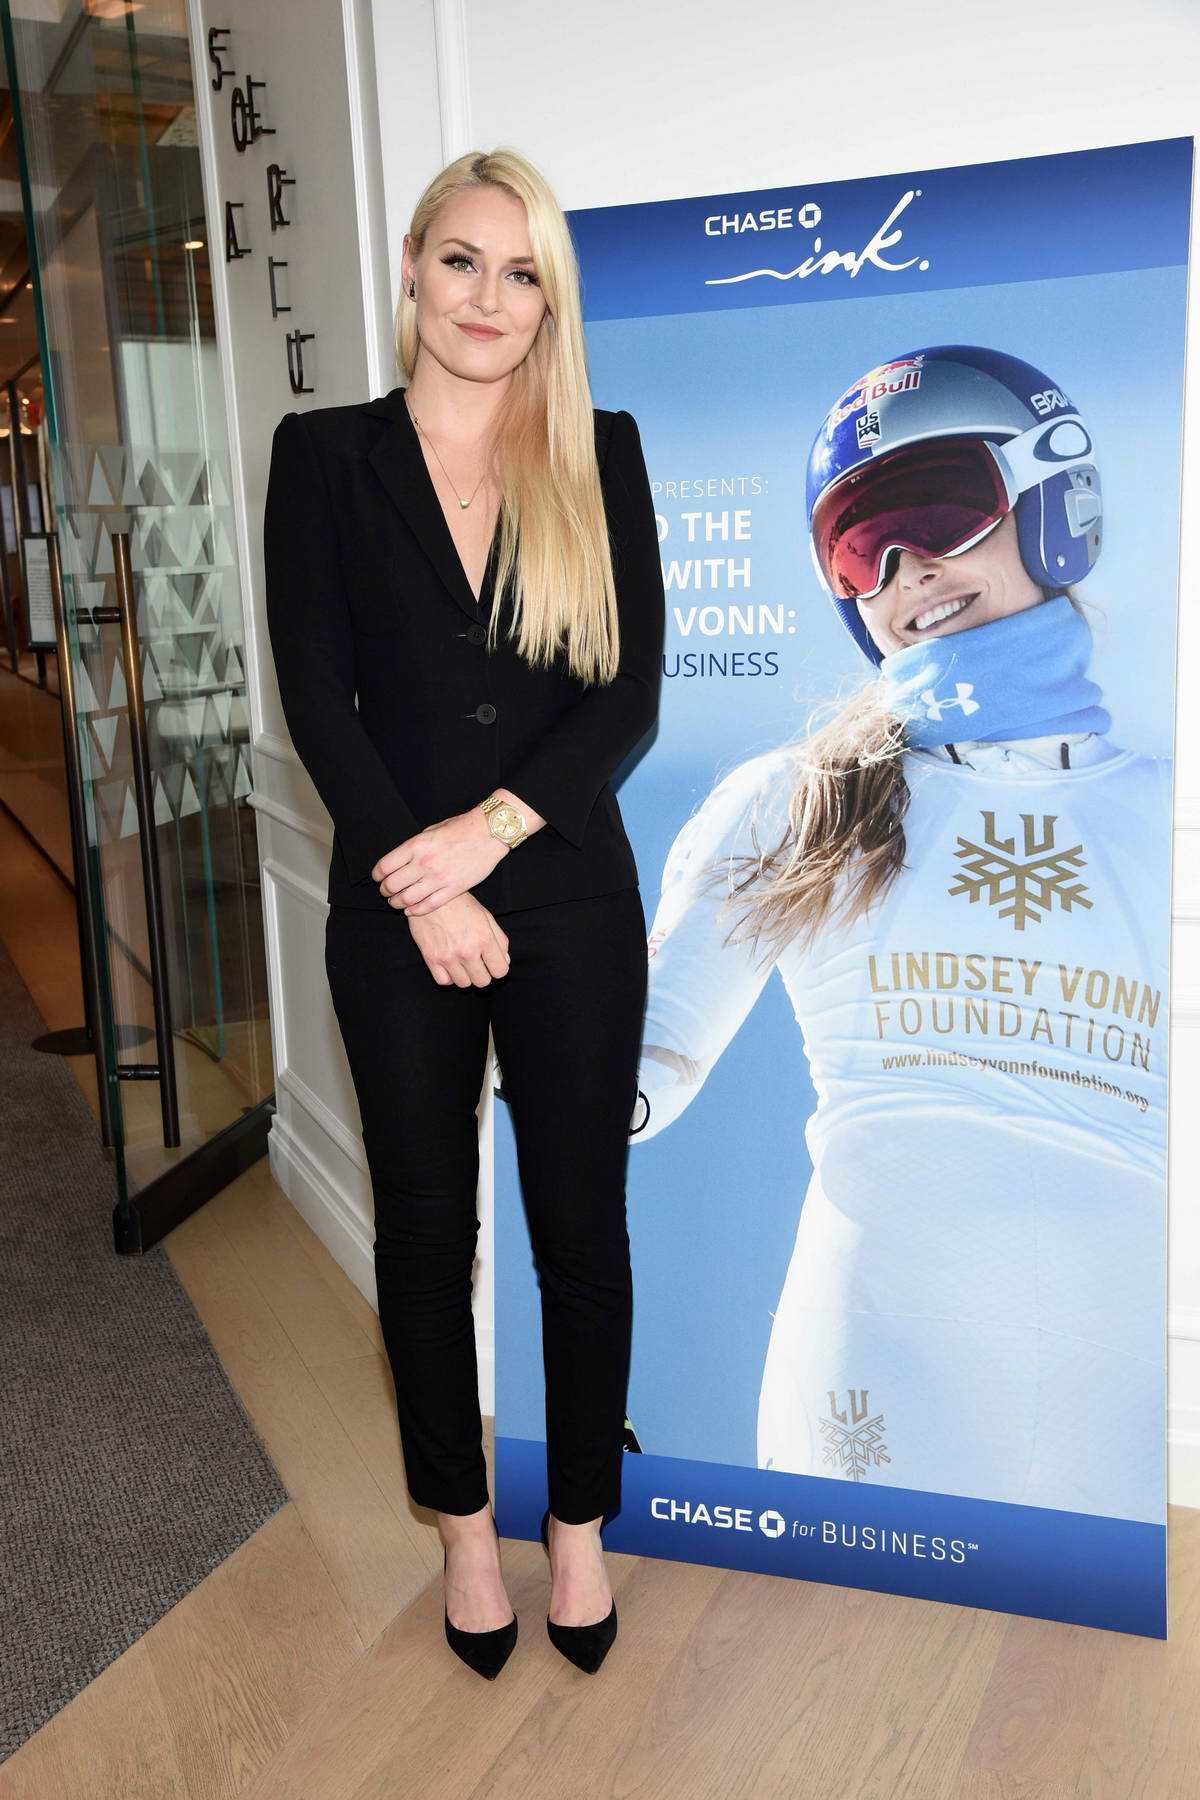 Lindsey Vonn at the Collaboration with Chase Ink 'Beyond the Slopes with Lindsey Vonn: A Small Business Event' in New York City